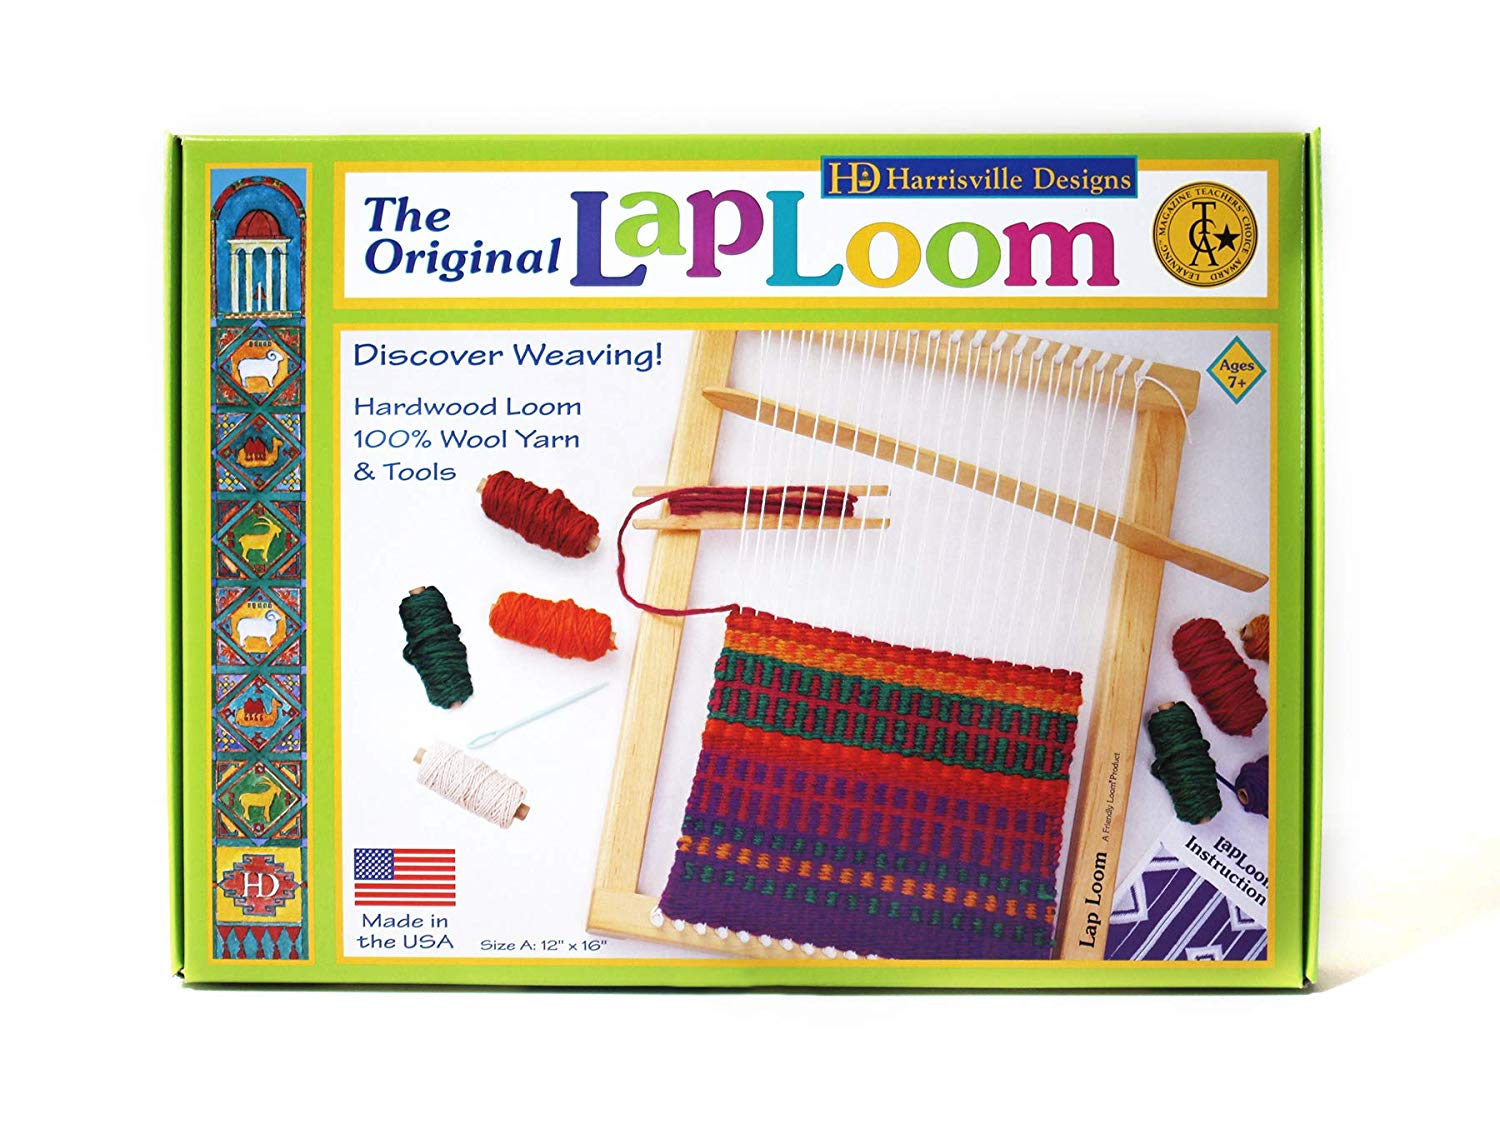 Harrisville Designs Lap Loom